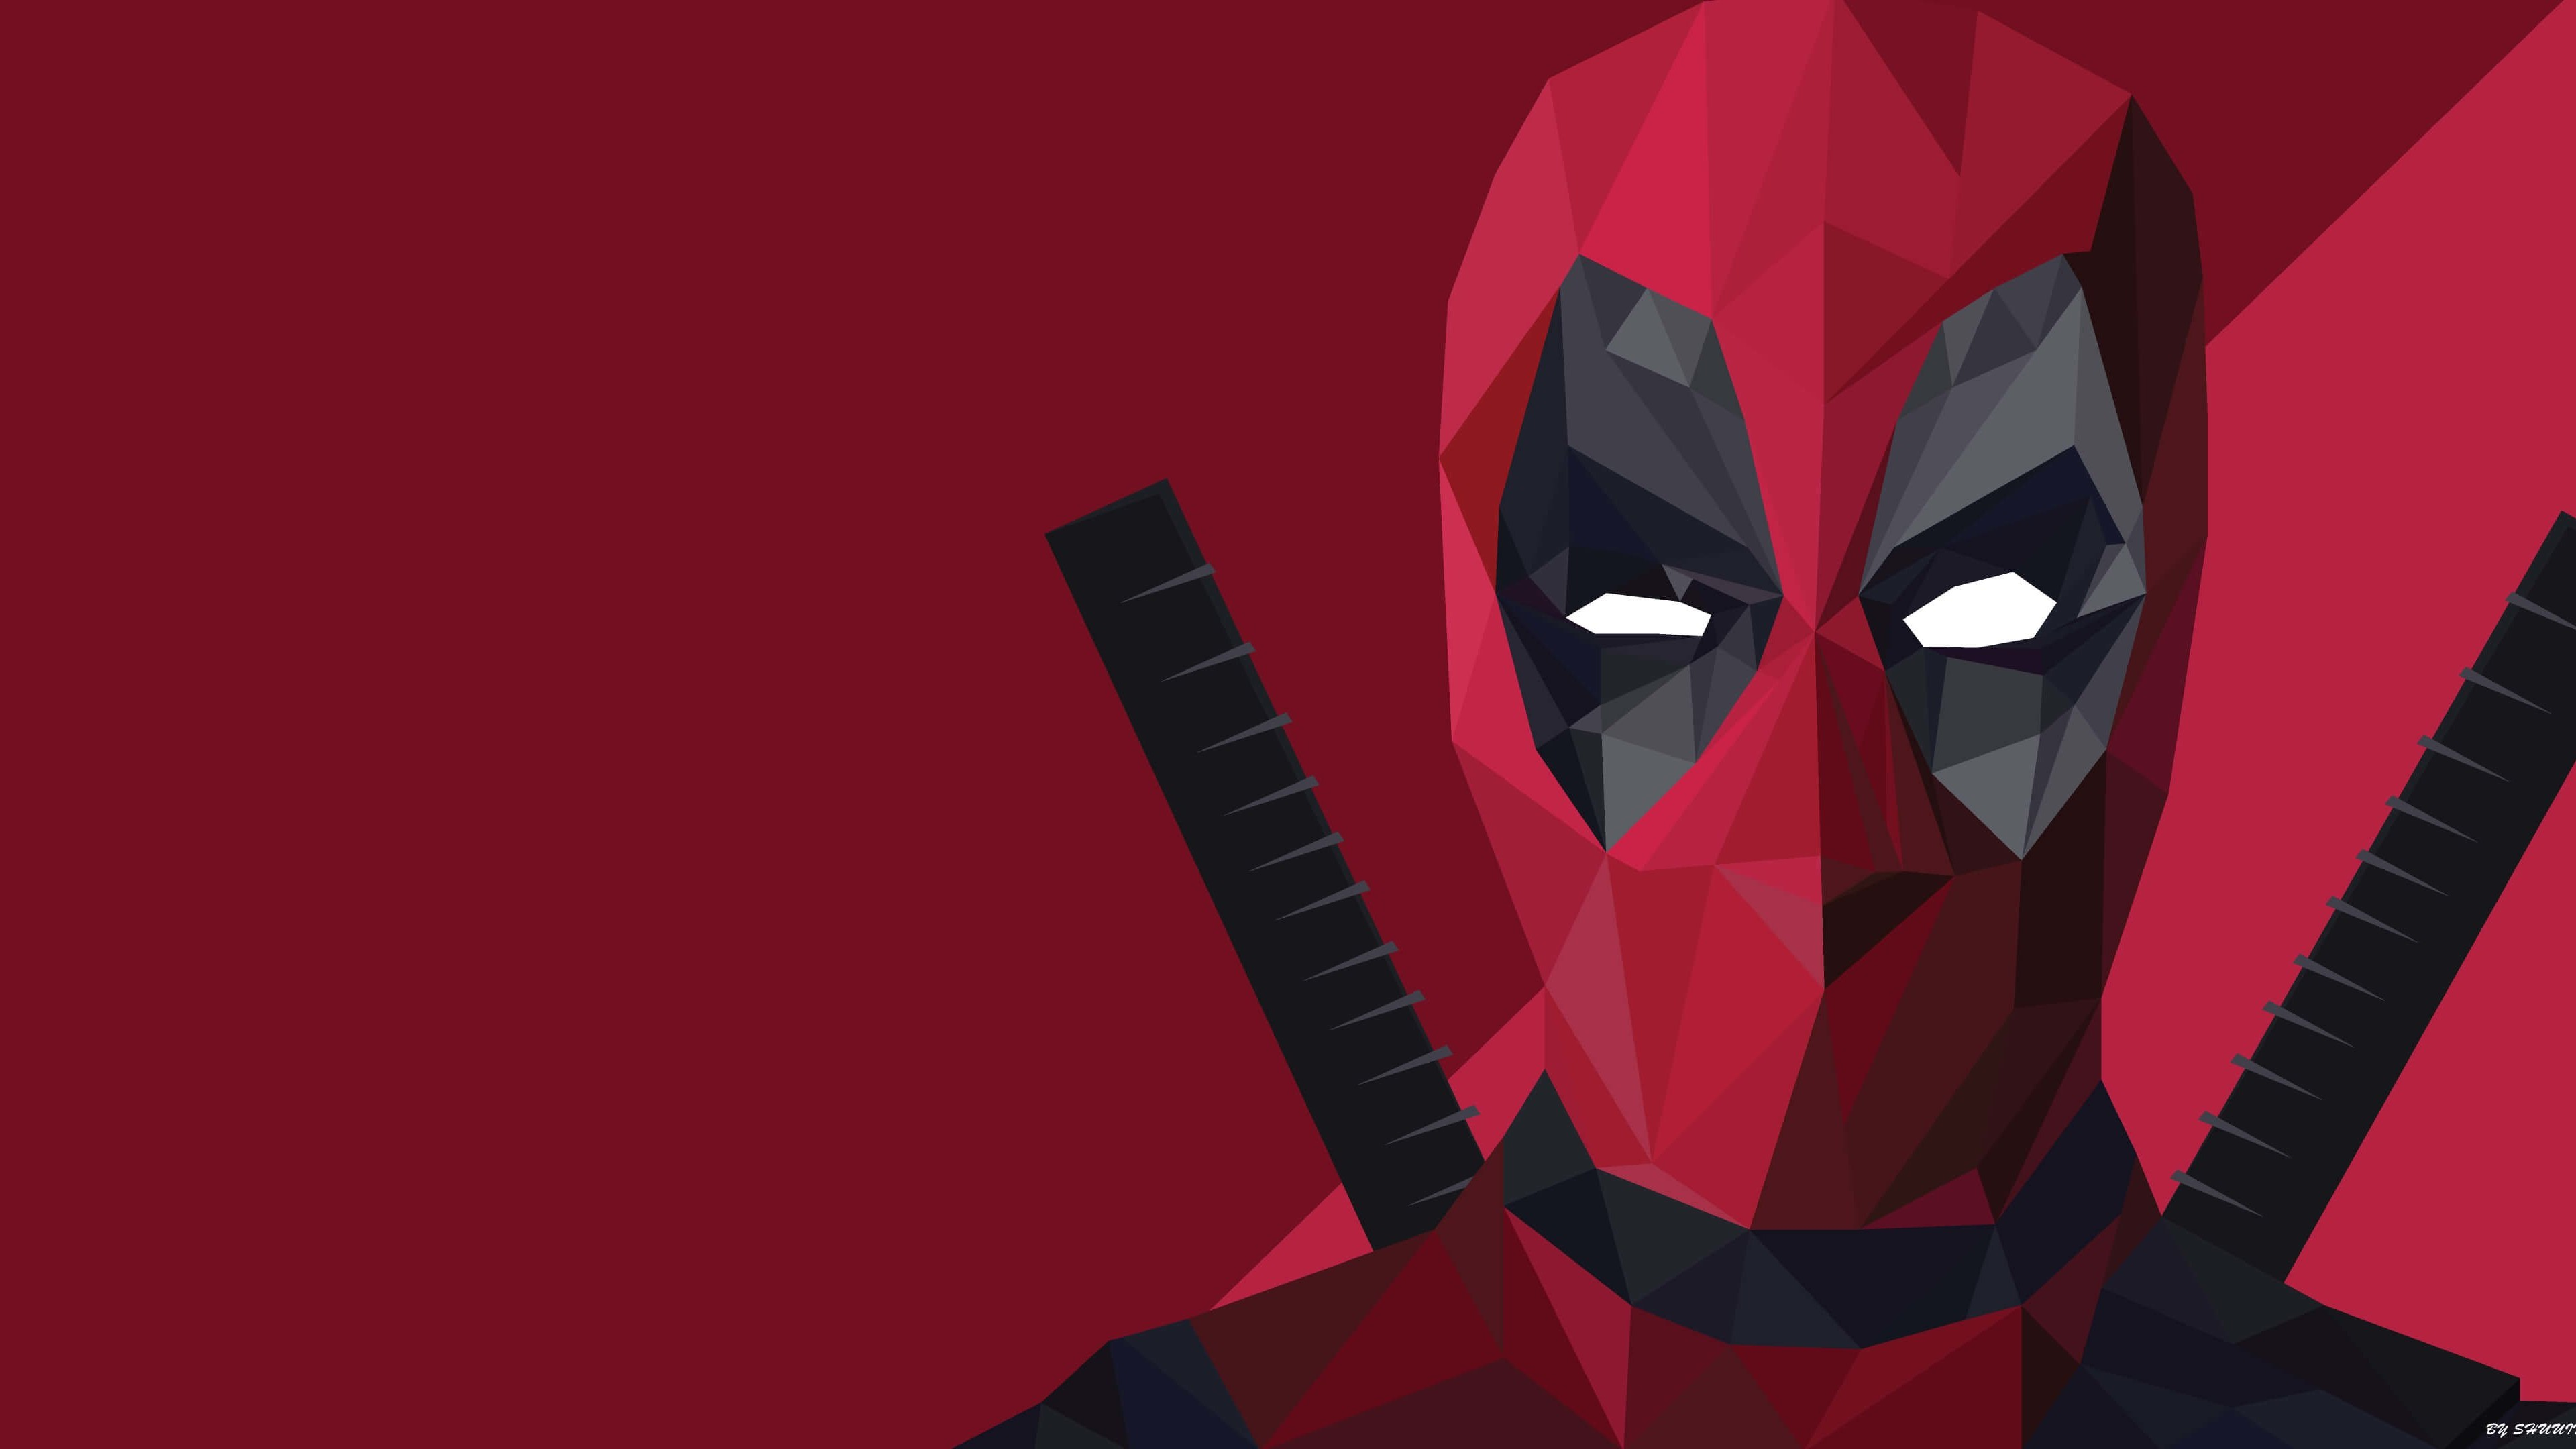 Low Poly Deadpool Wallpaper for Desktop 4K 3840x2160